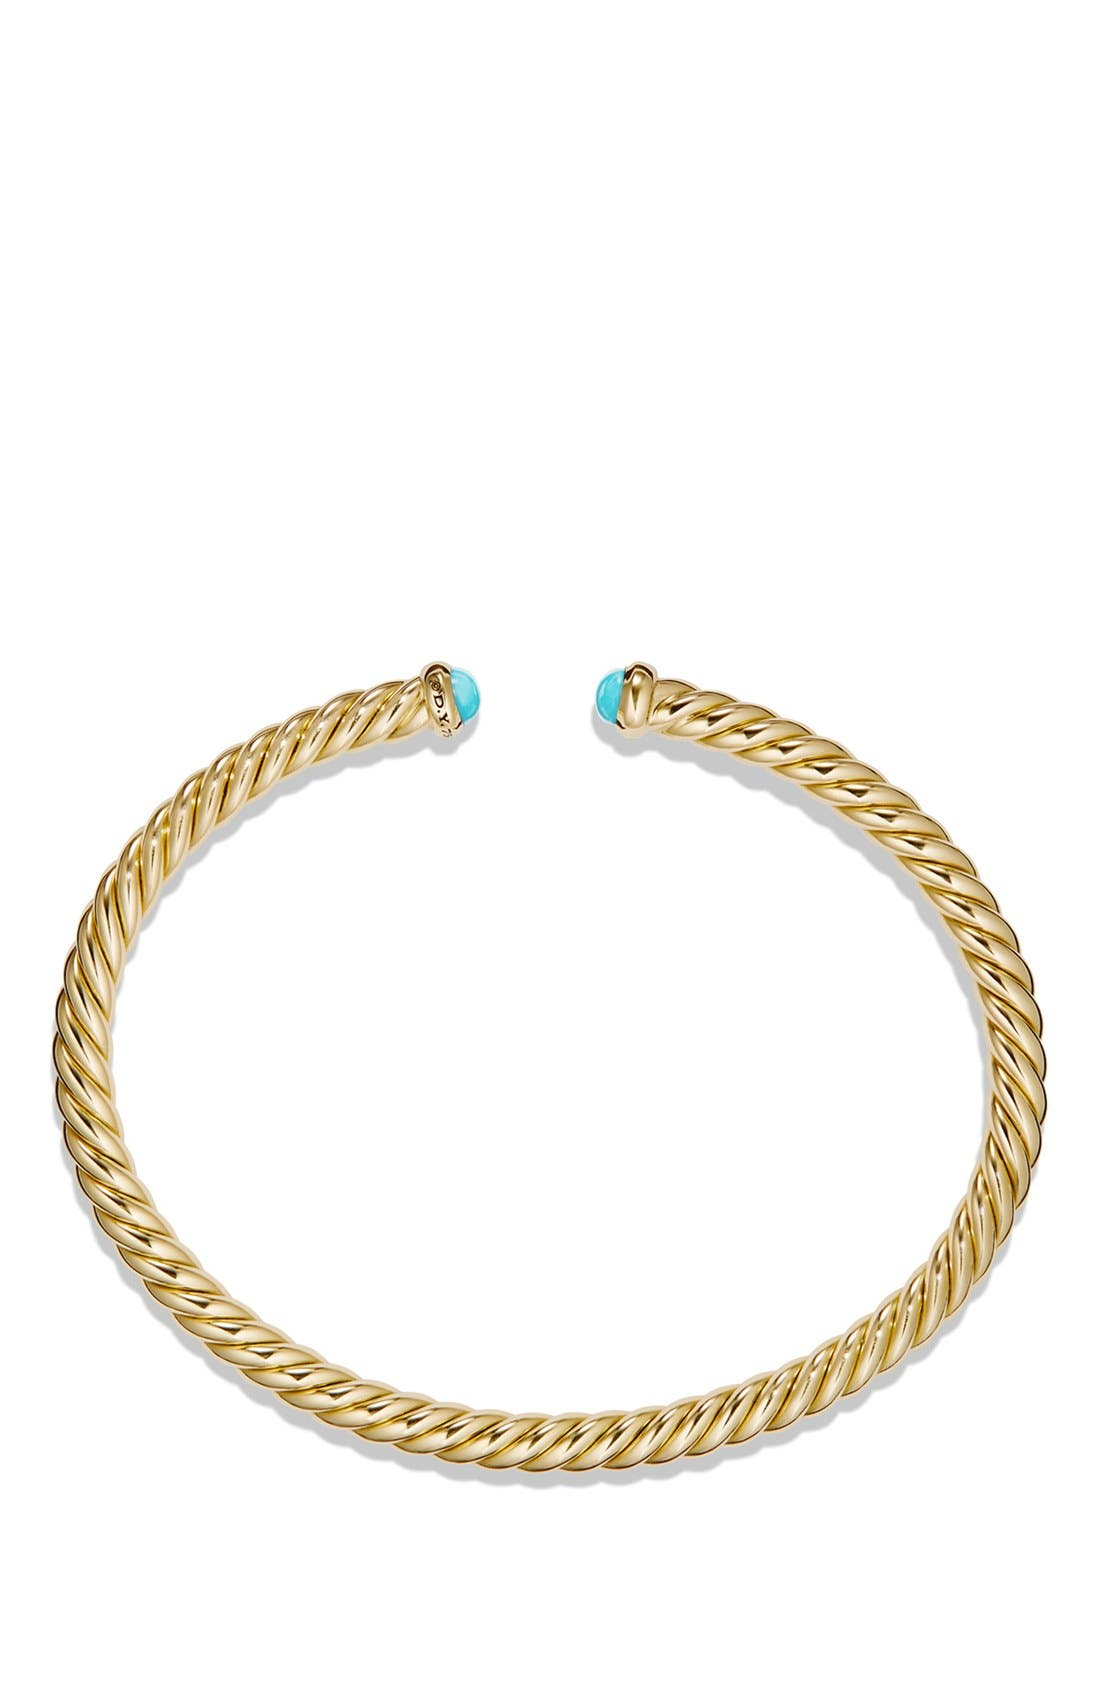 Cable Spira Bracelet with Semiprecious Stones in 18K Gold,                             Alternate thumbnail 2, color,                             TURQUOISE